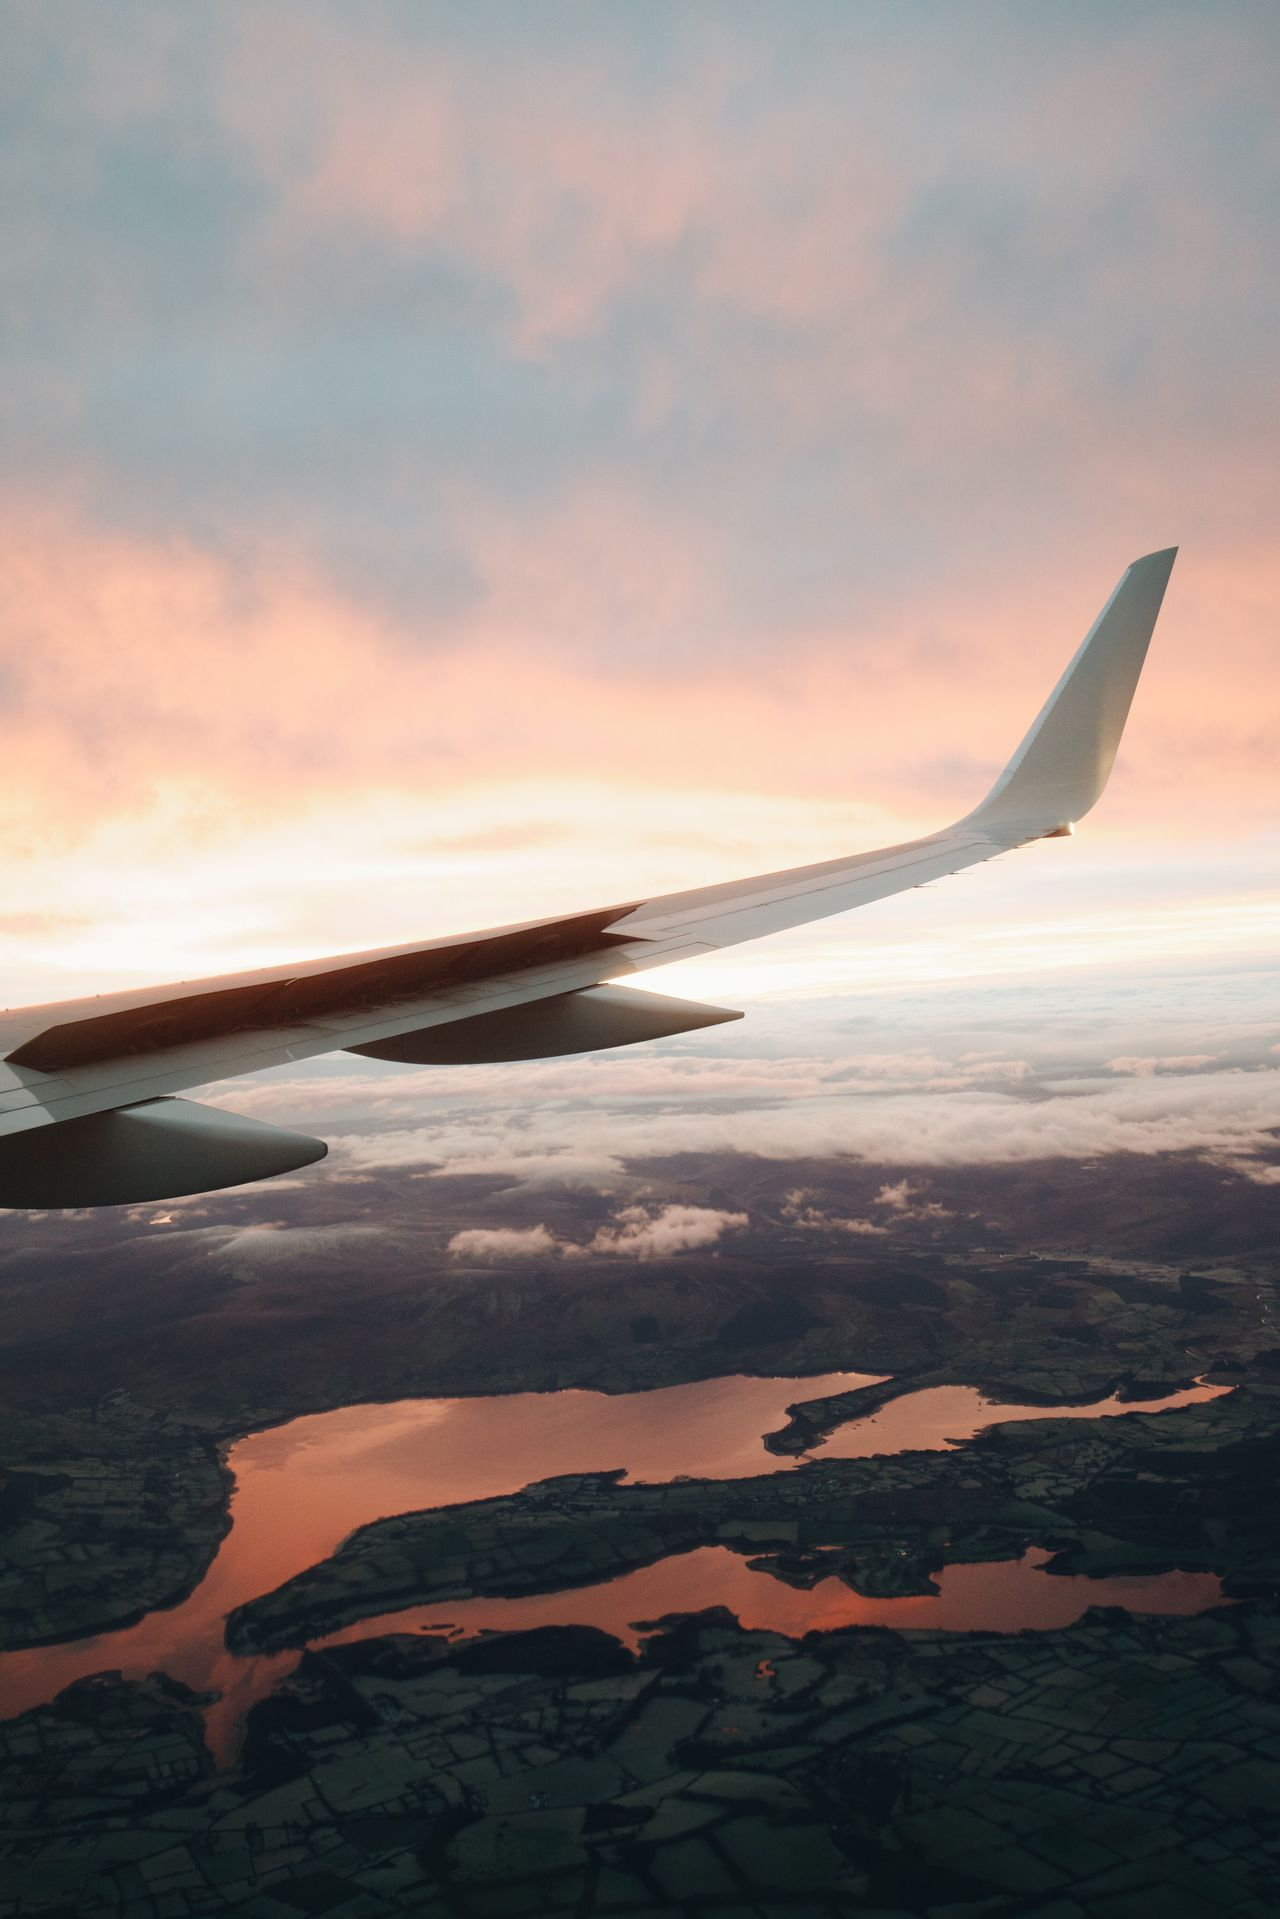 Beautiful stock photos of airplane, sunset, flying, travel